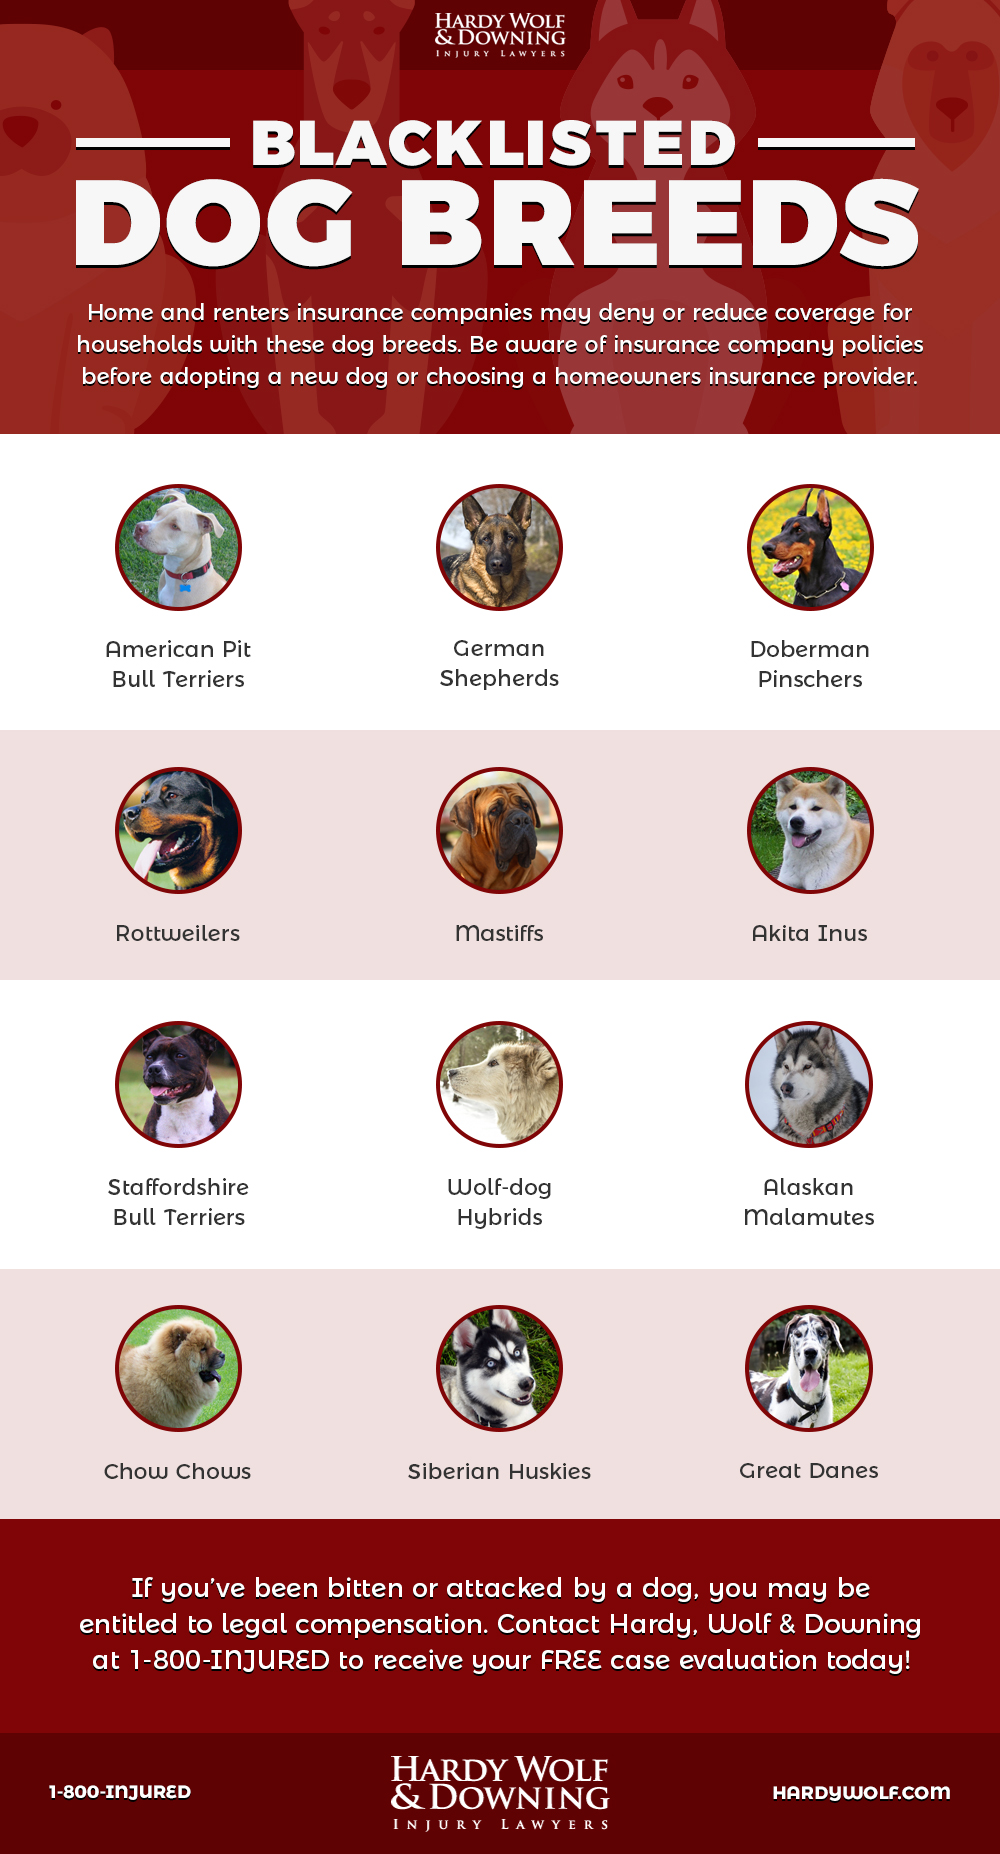 Common Breeds Banned By Insurance - Hardy Wolf & Downing